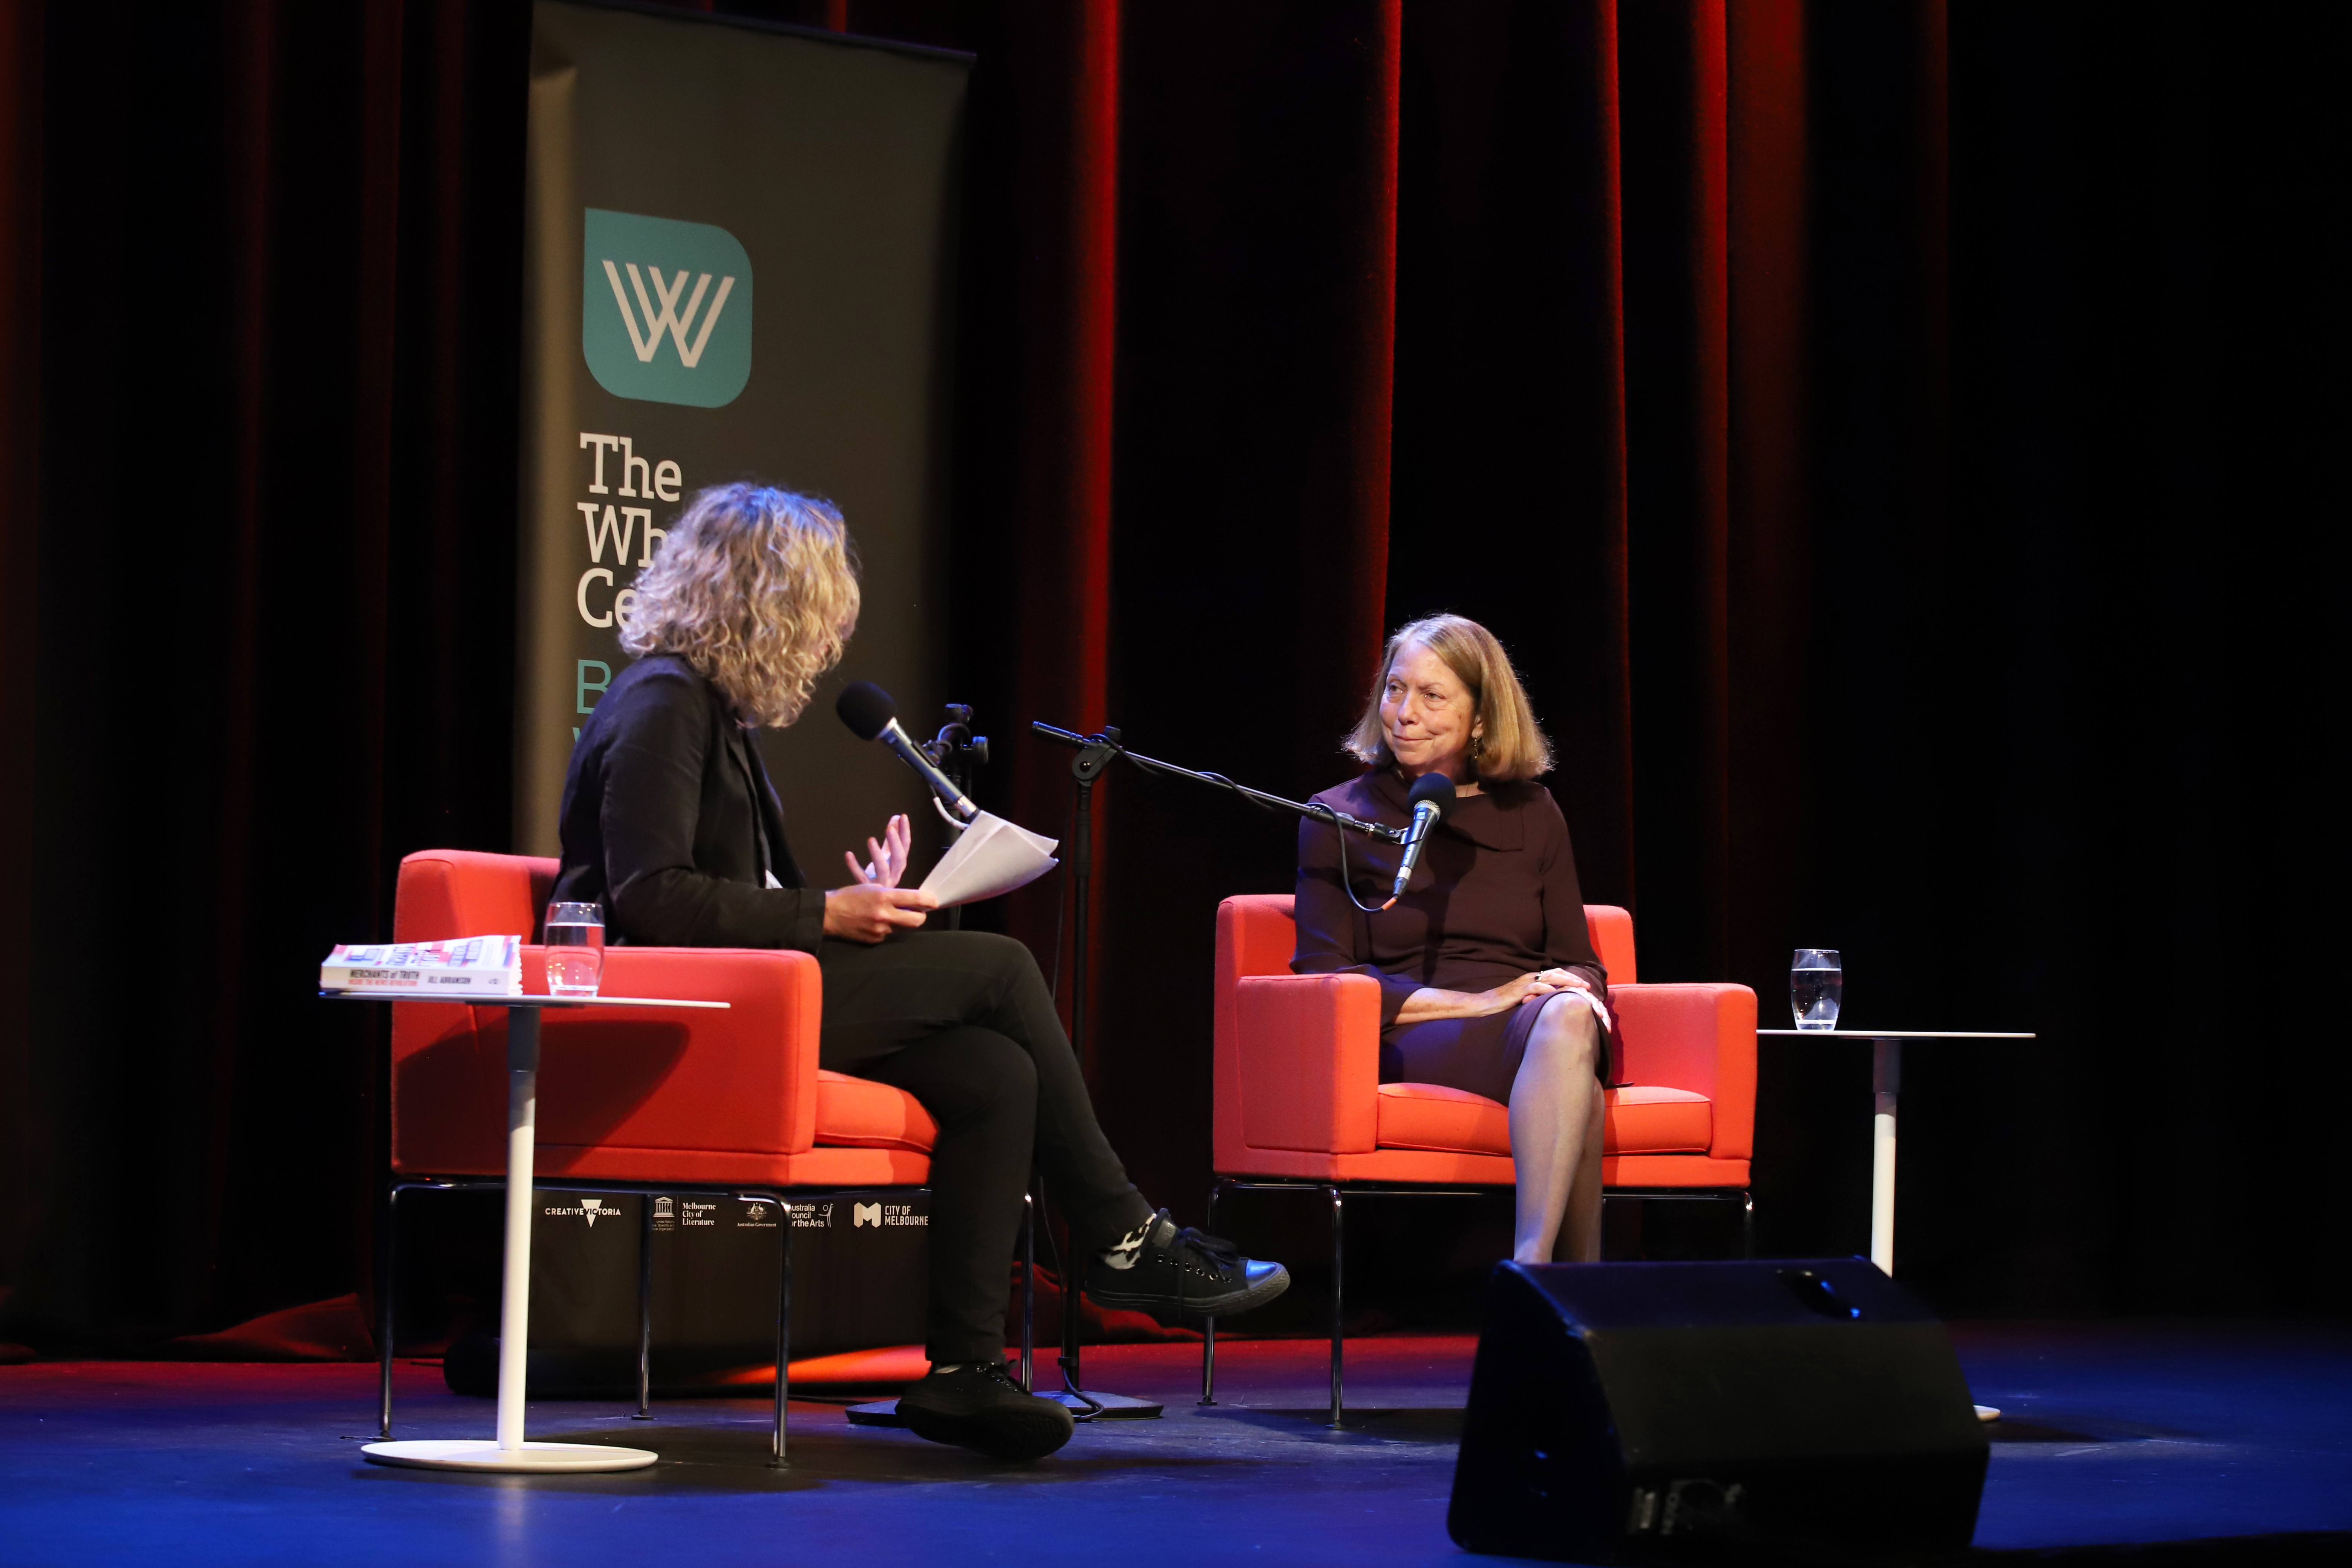 Photo of Sally Warhaft and Jill Abramson on stage at the Athenaeum Theatre